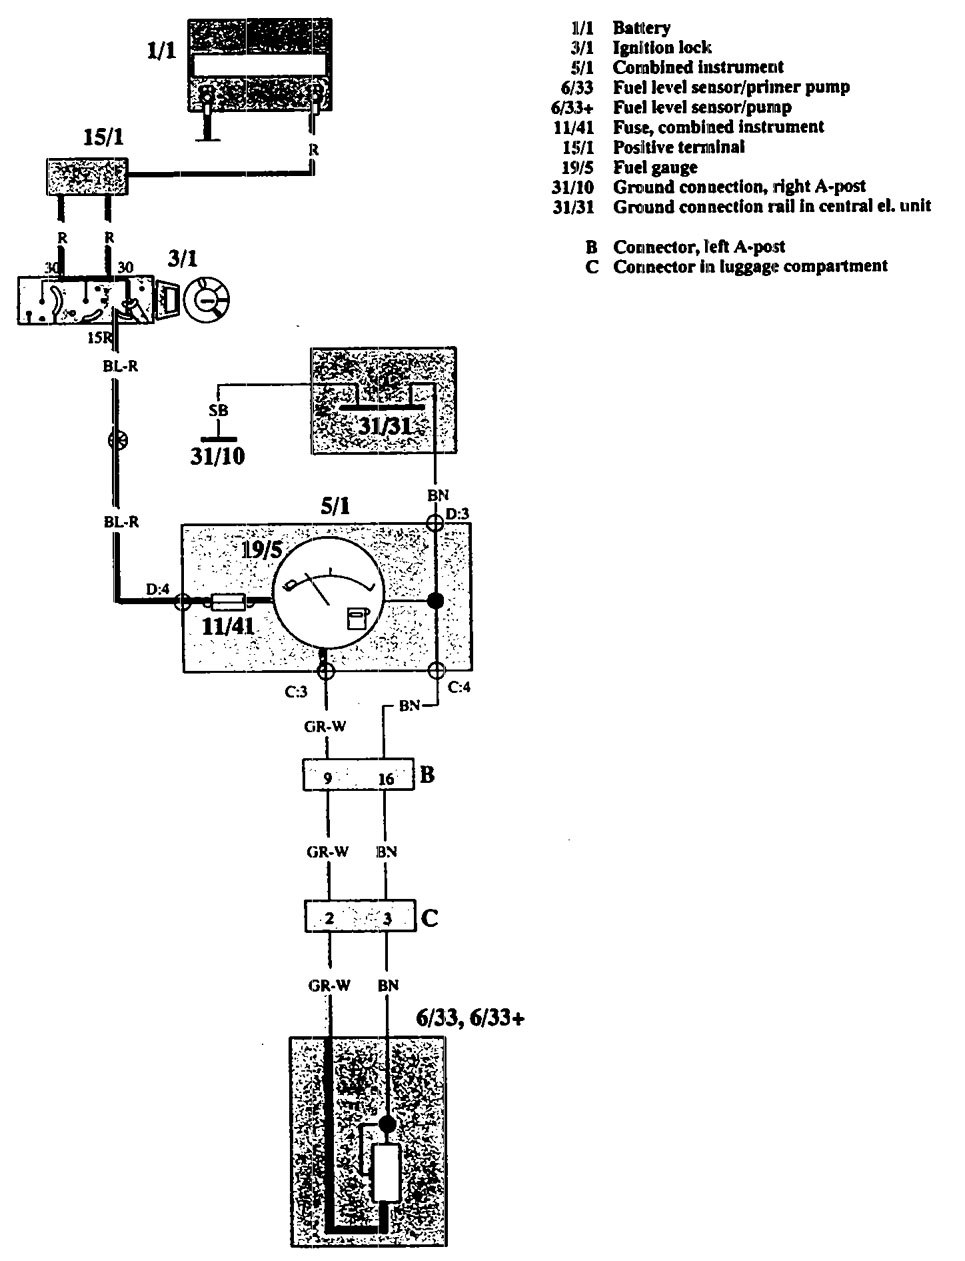 Volvo 740 Radio Wiring Diagram Real 1992 960 Central Locking Gallery Writing 940 Stereo 1990 240